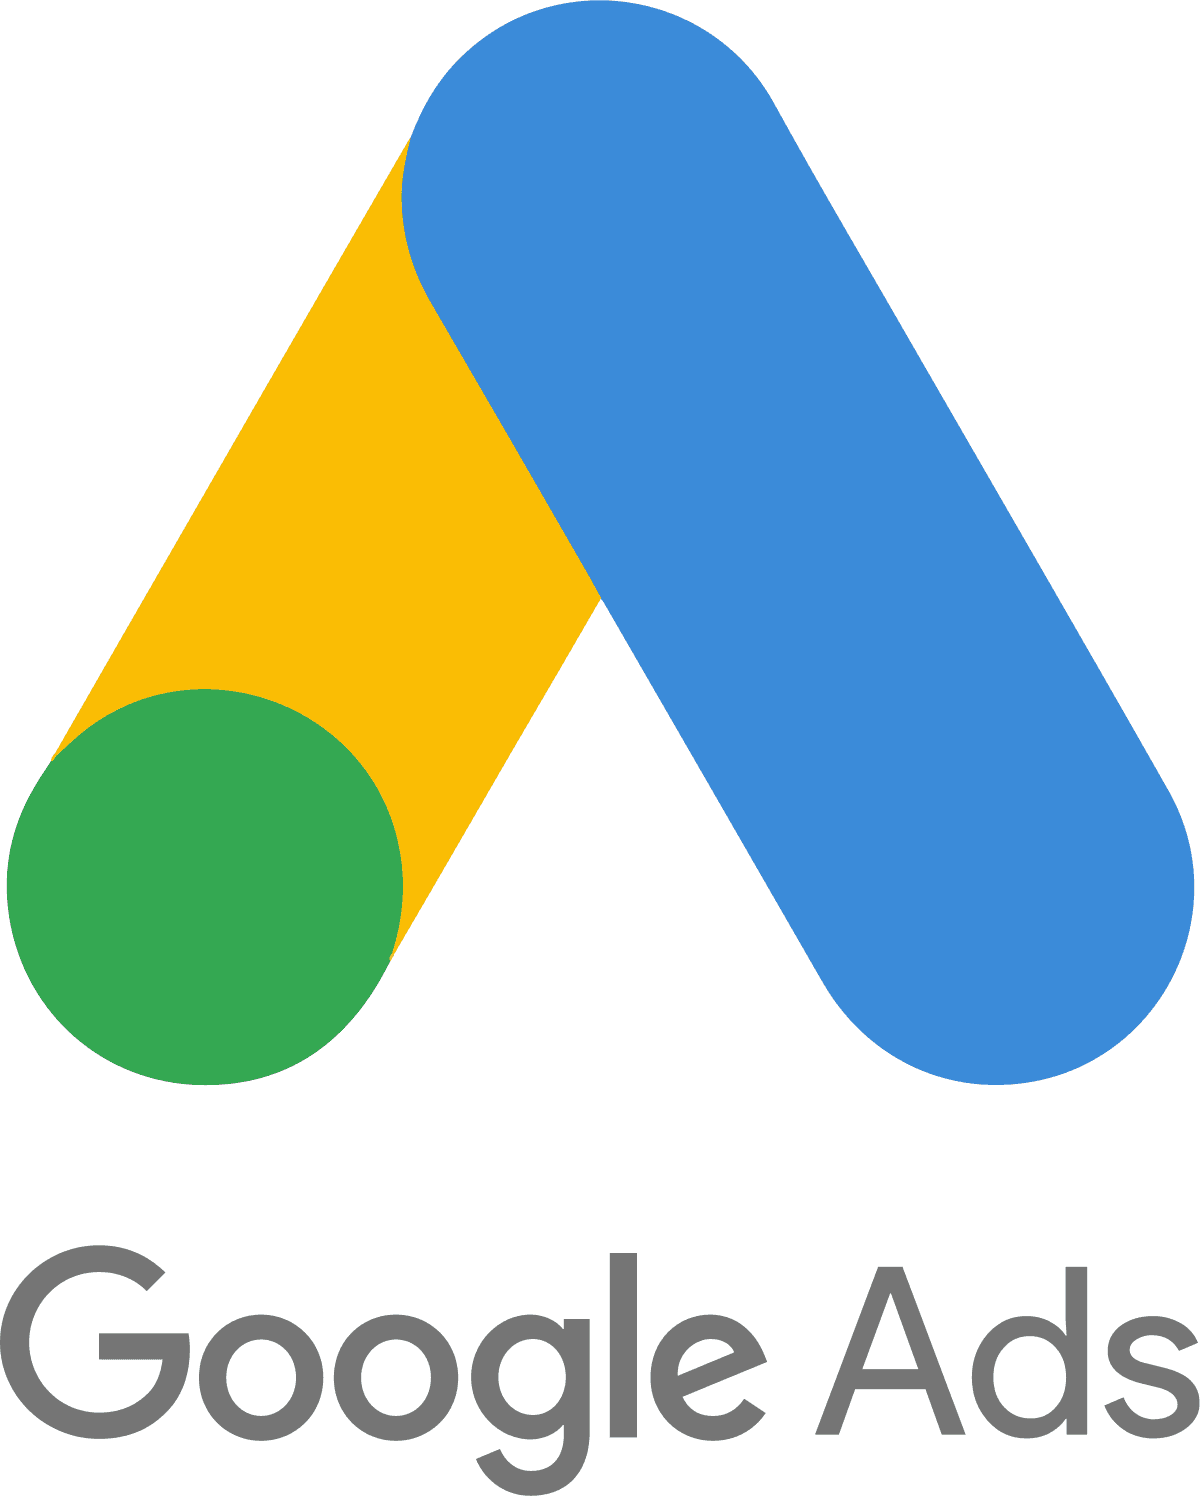 Google Ads Smart Bidding Guide For Agencies